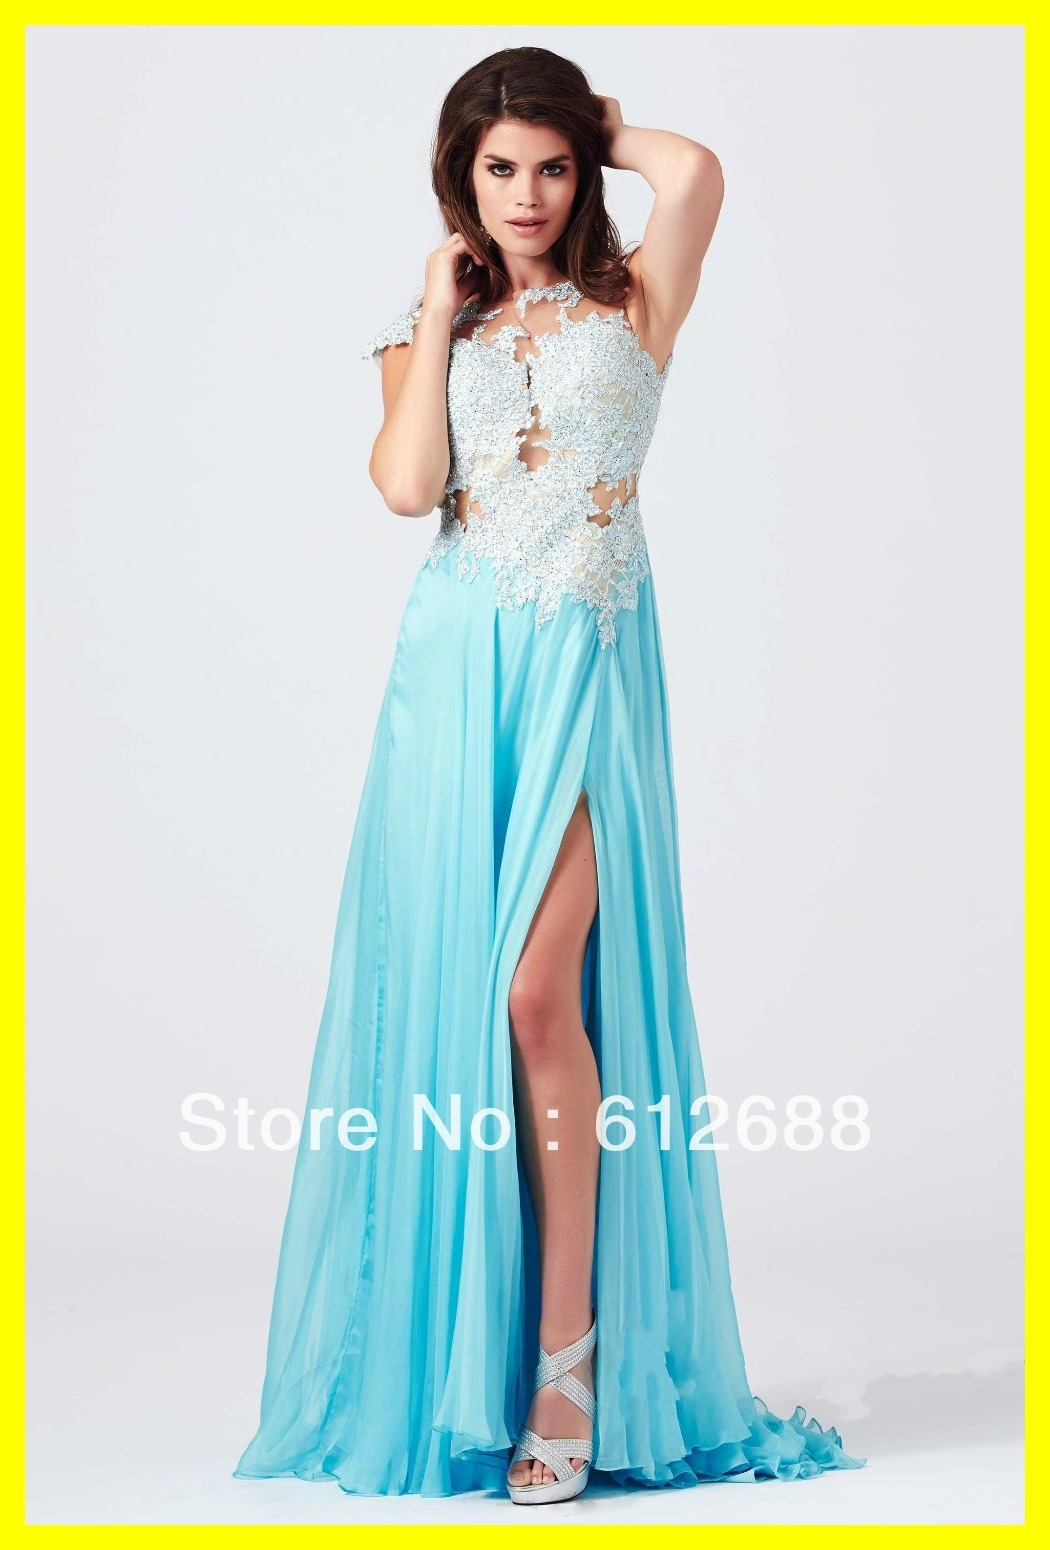 Prom Dresses In Raleigh Nc | Cocktail Dresses